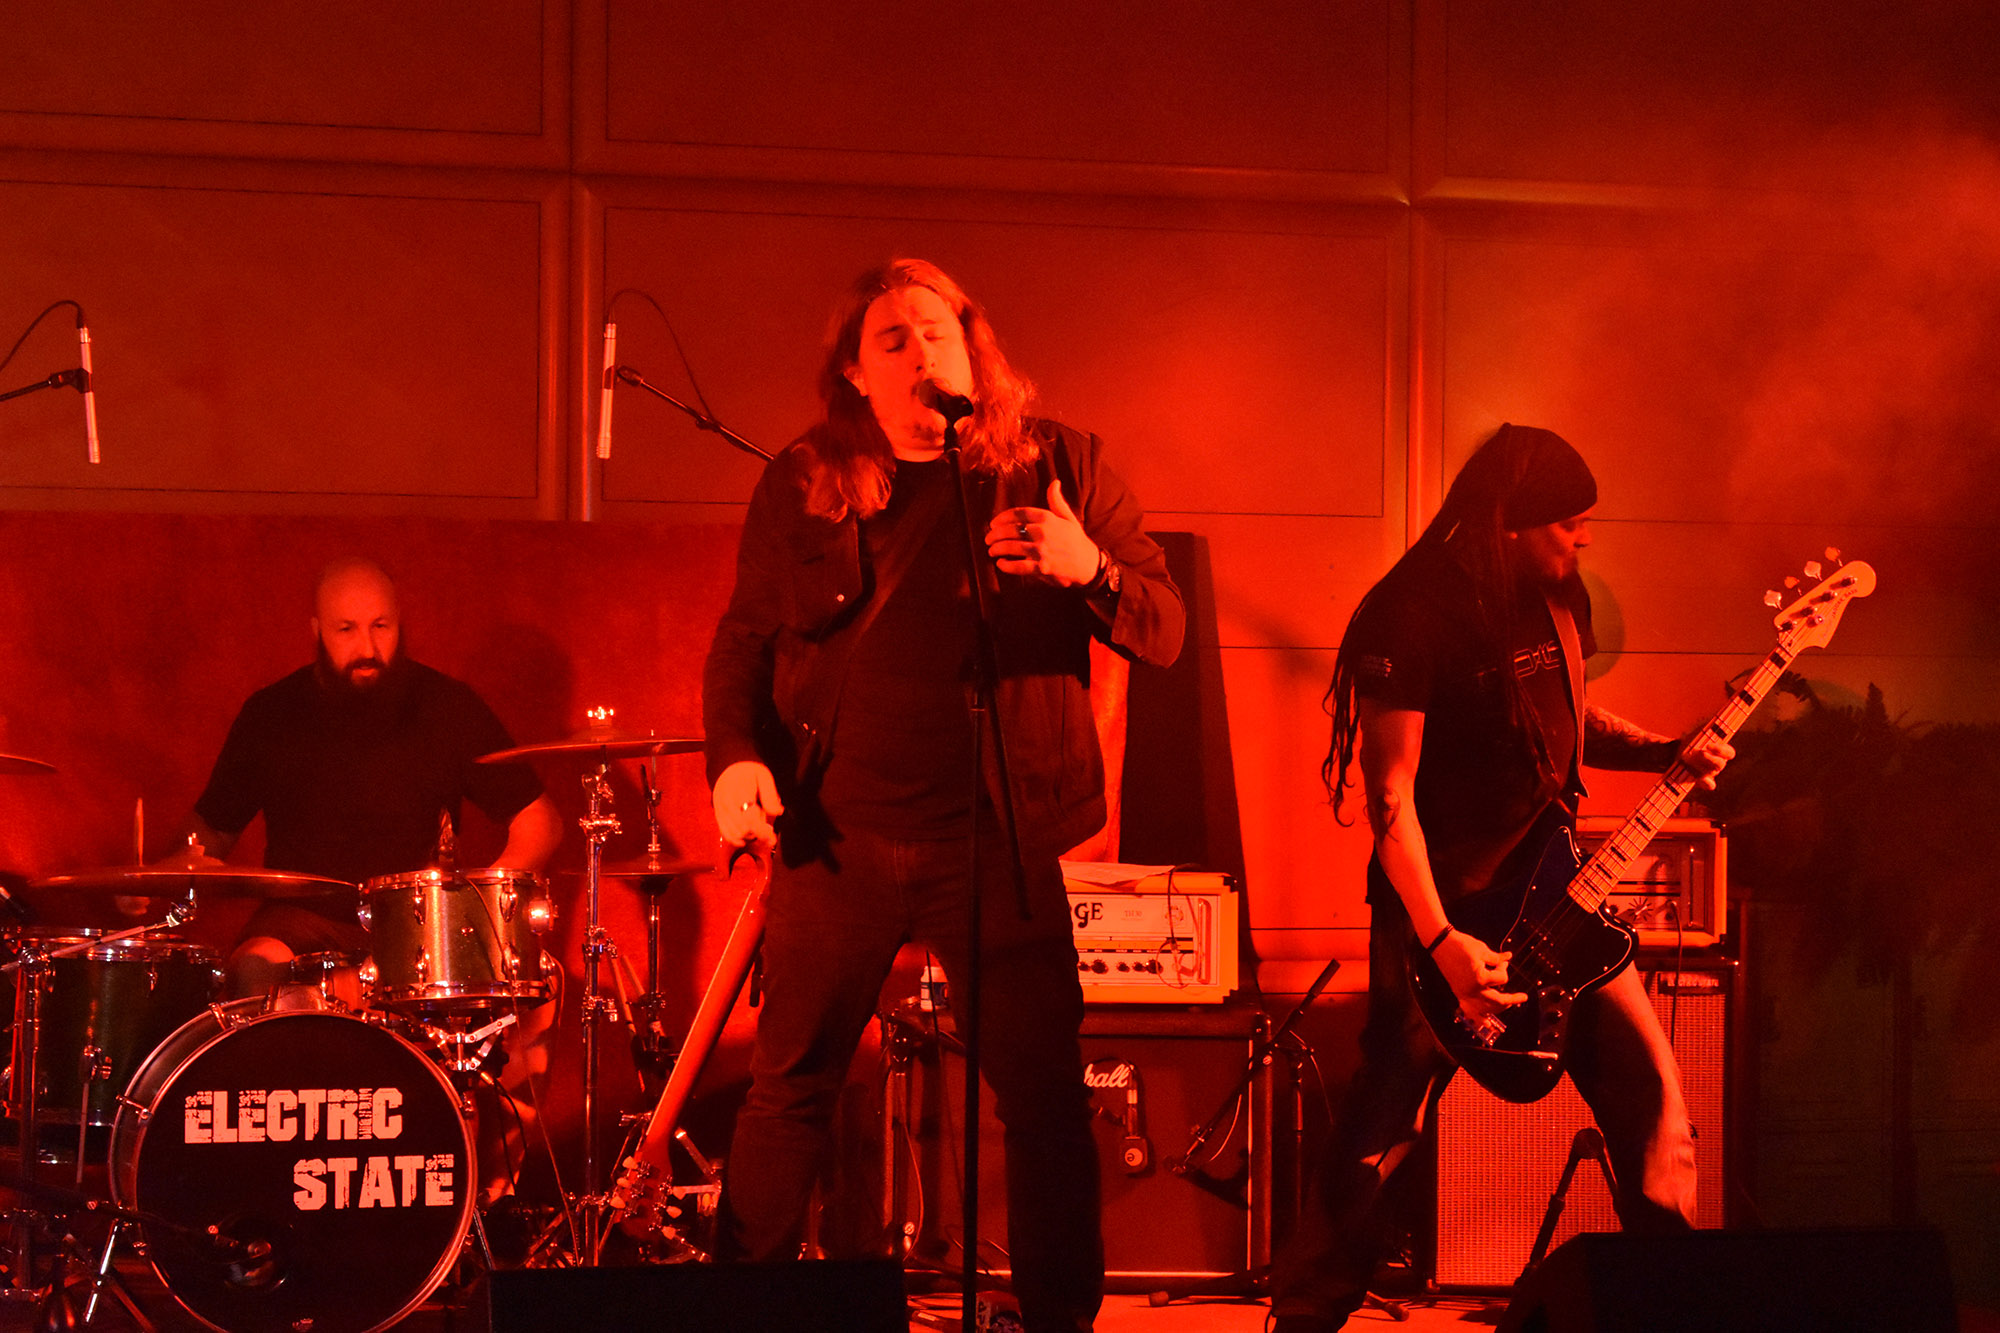 Hard rock band Electric State performing at our launch